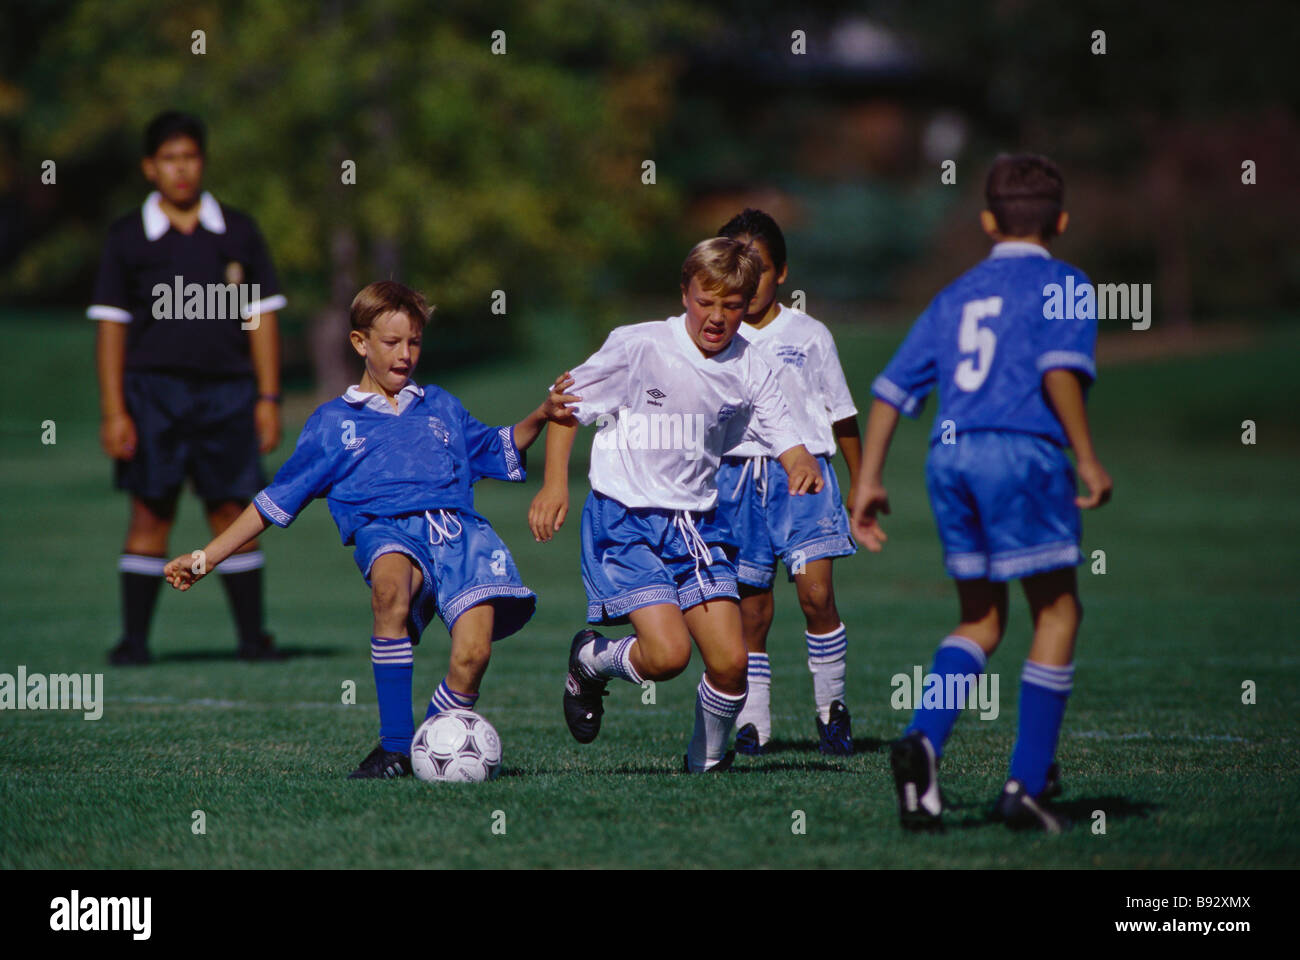 11 year old boys soccer action Stock Photo: 22807146 - Alamy